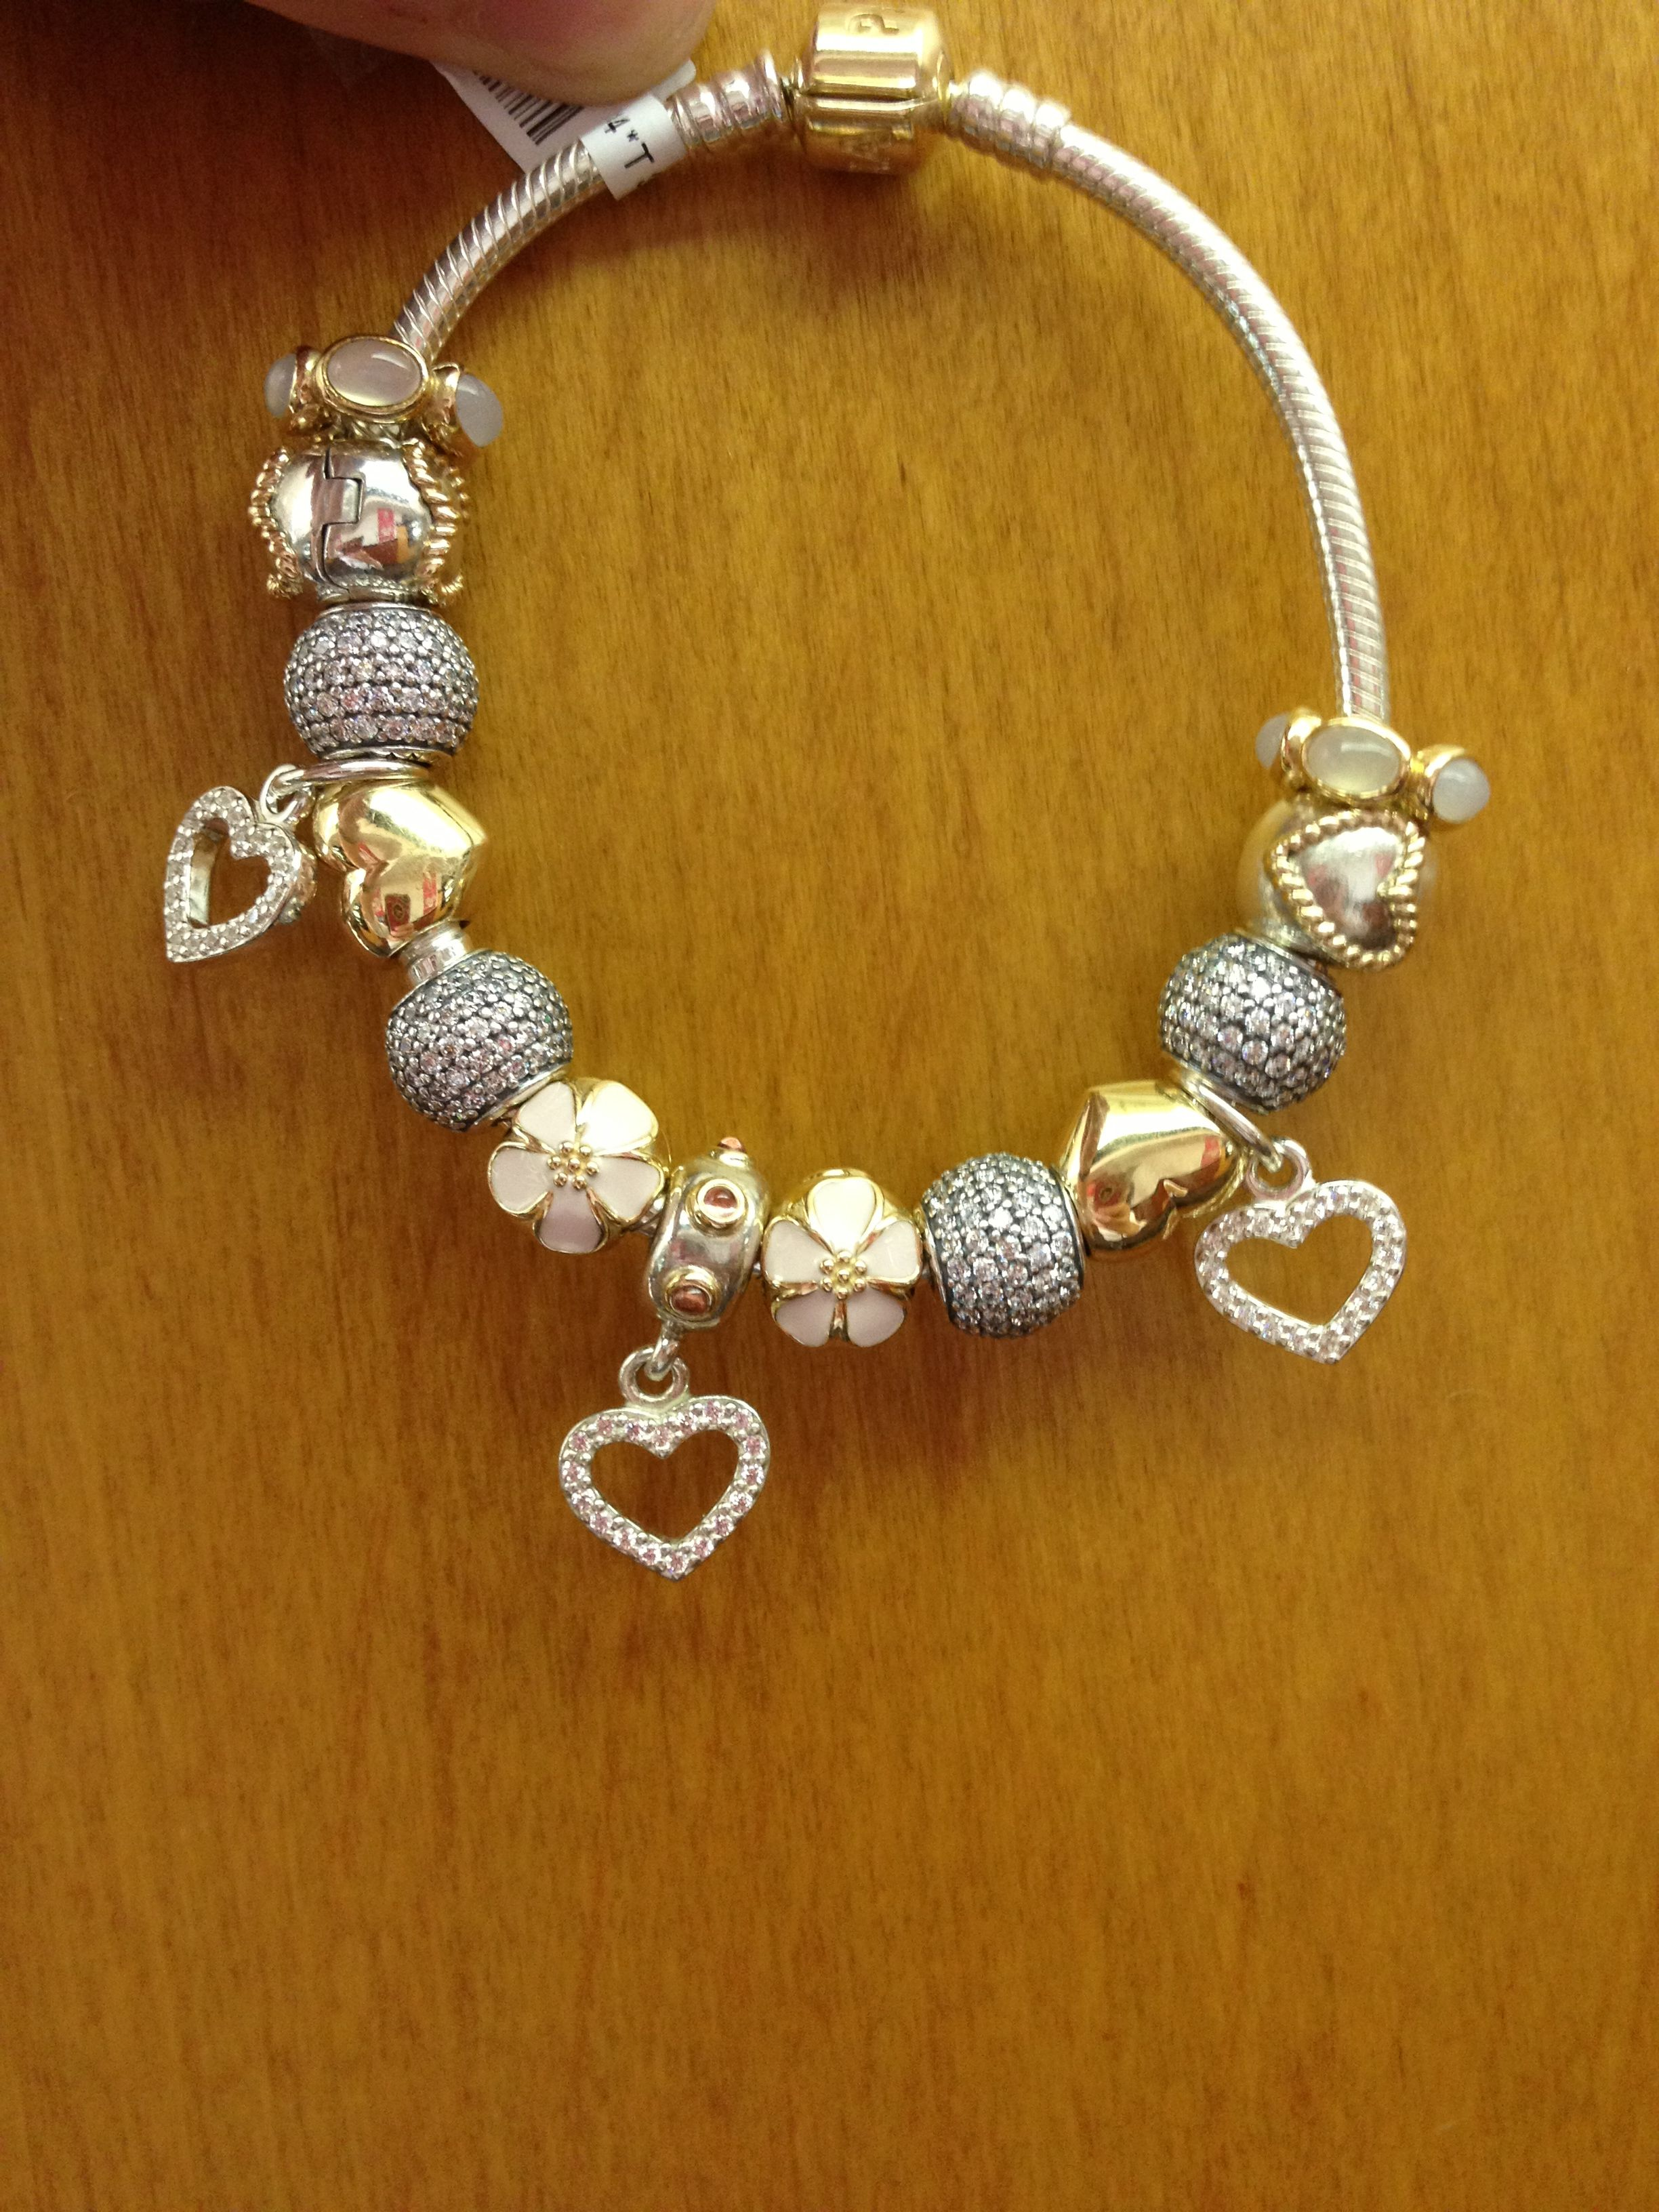 dec8b2ef2 While I would never buy a finished bracelet, and the only pattern to mine  is parts of my life story ~ this is very pretty ♥